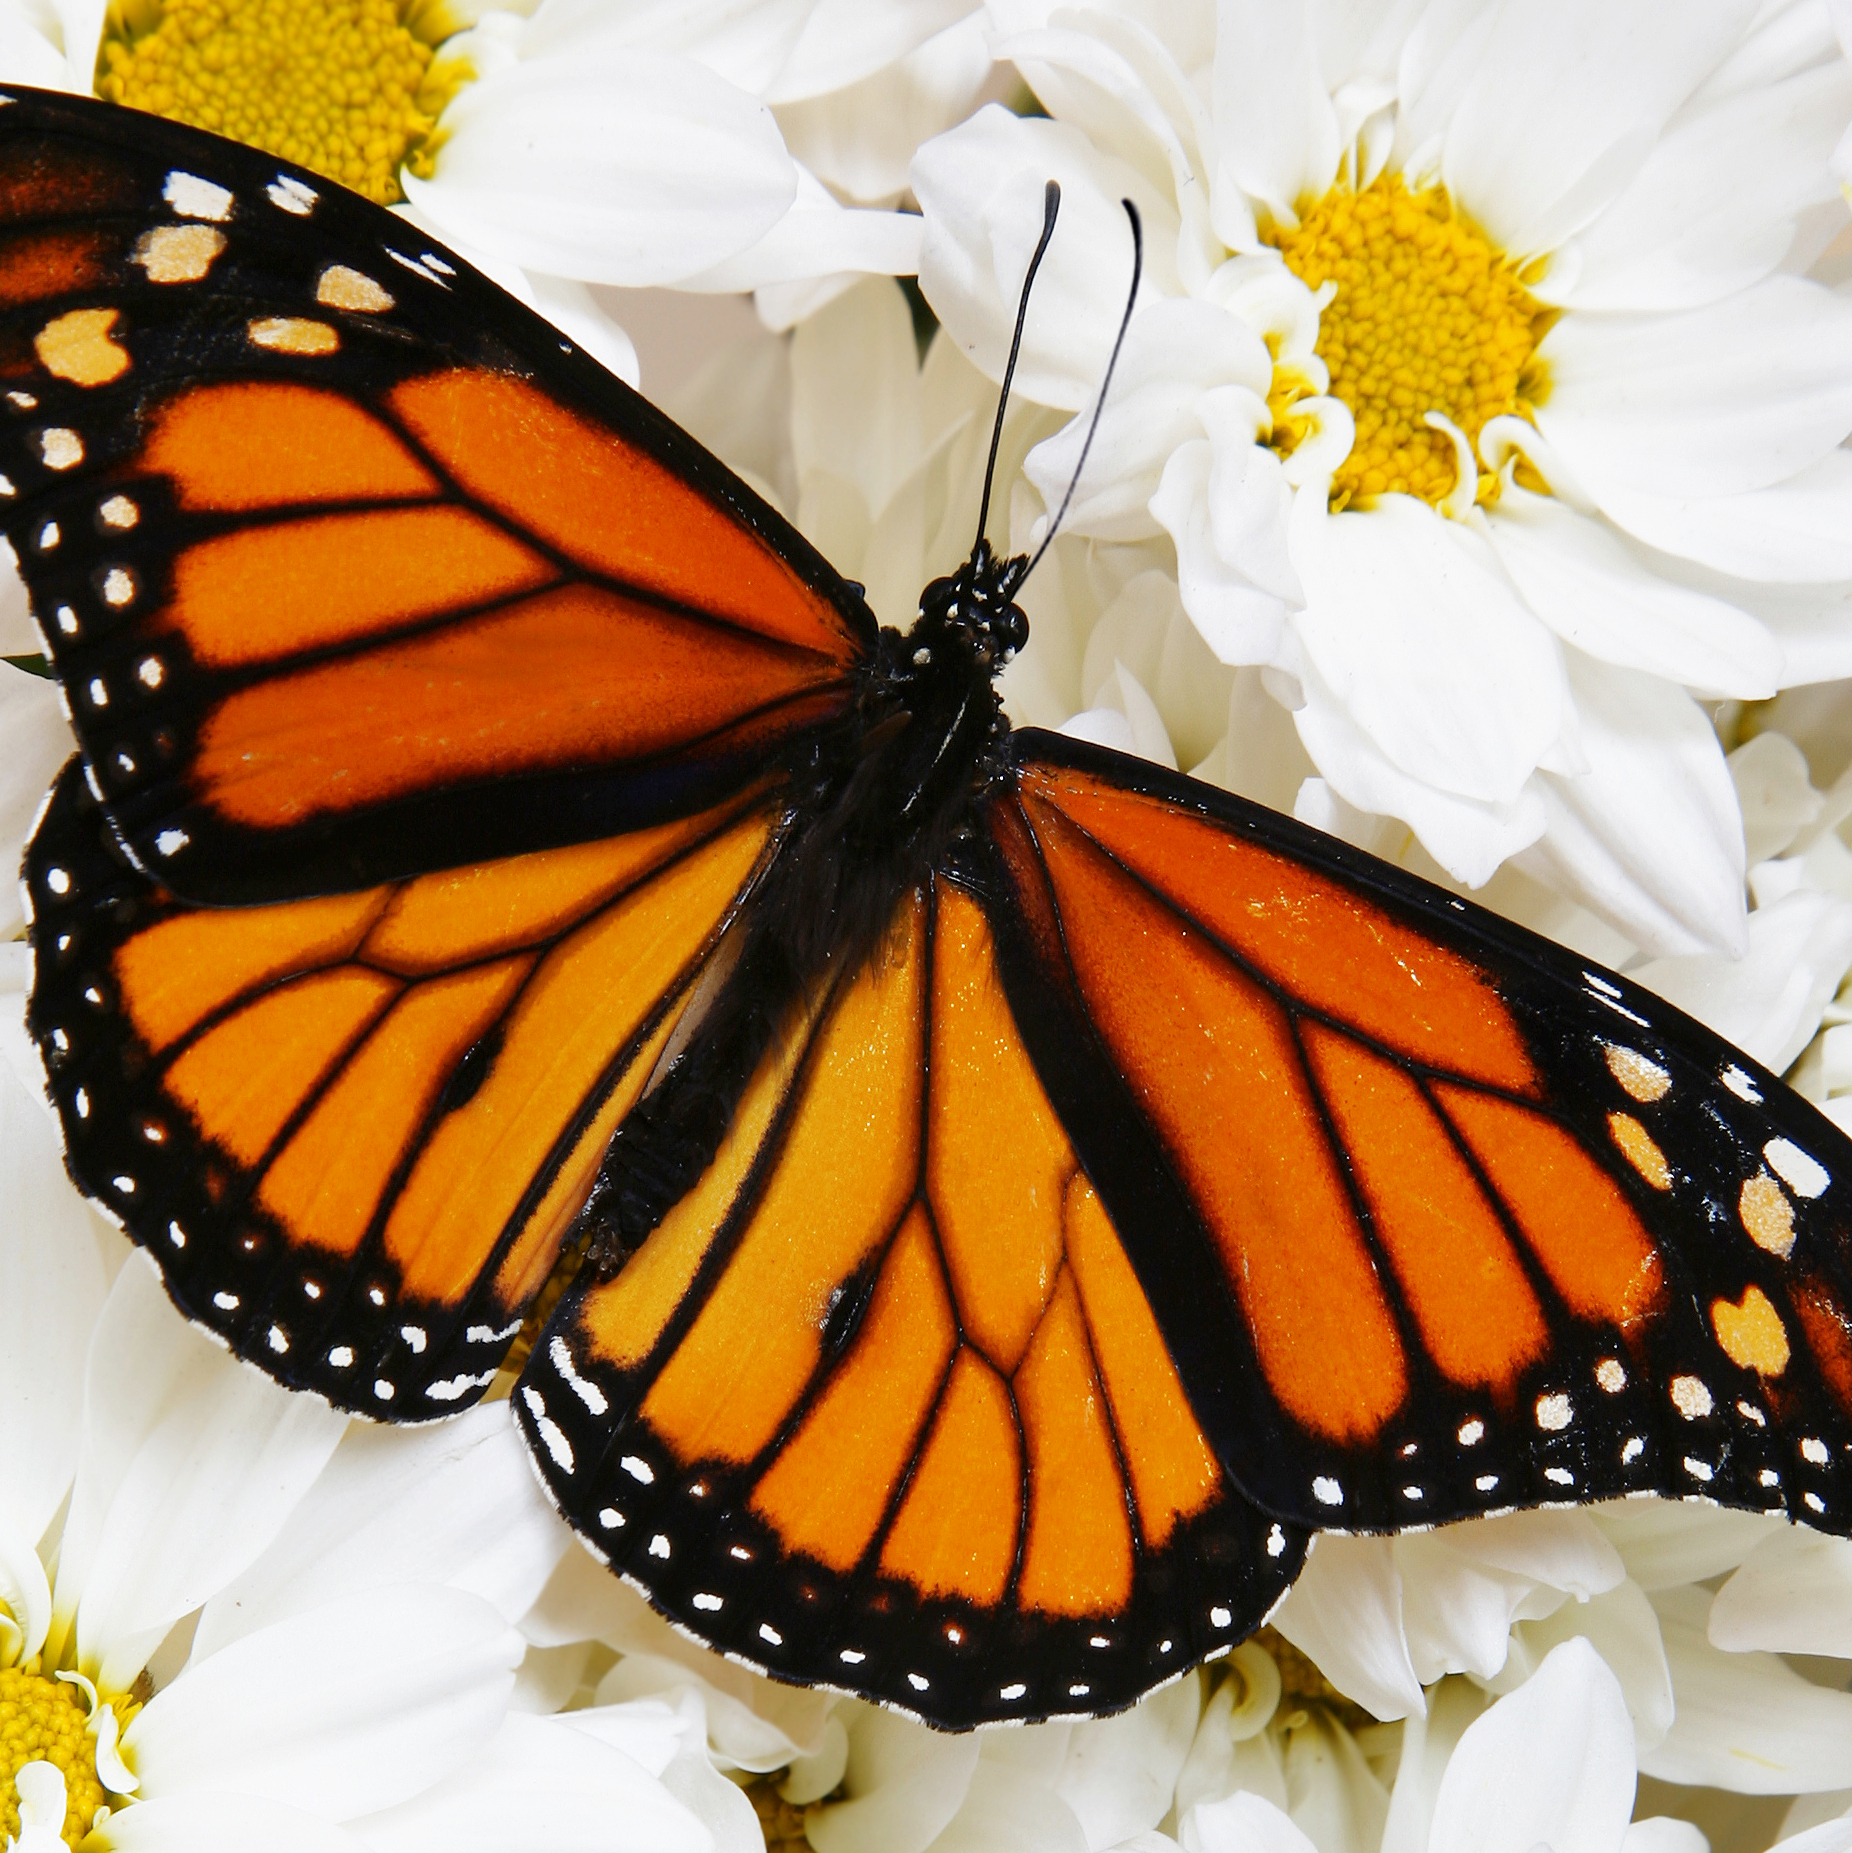 Two Dozen Monarch Butterflies - 24 Monarch Butterflies (choose your individual or mass release)